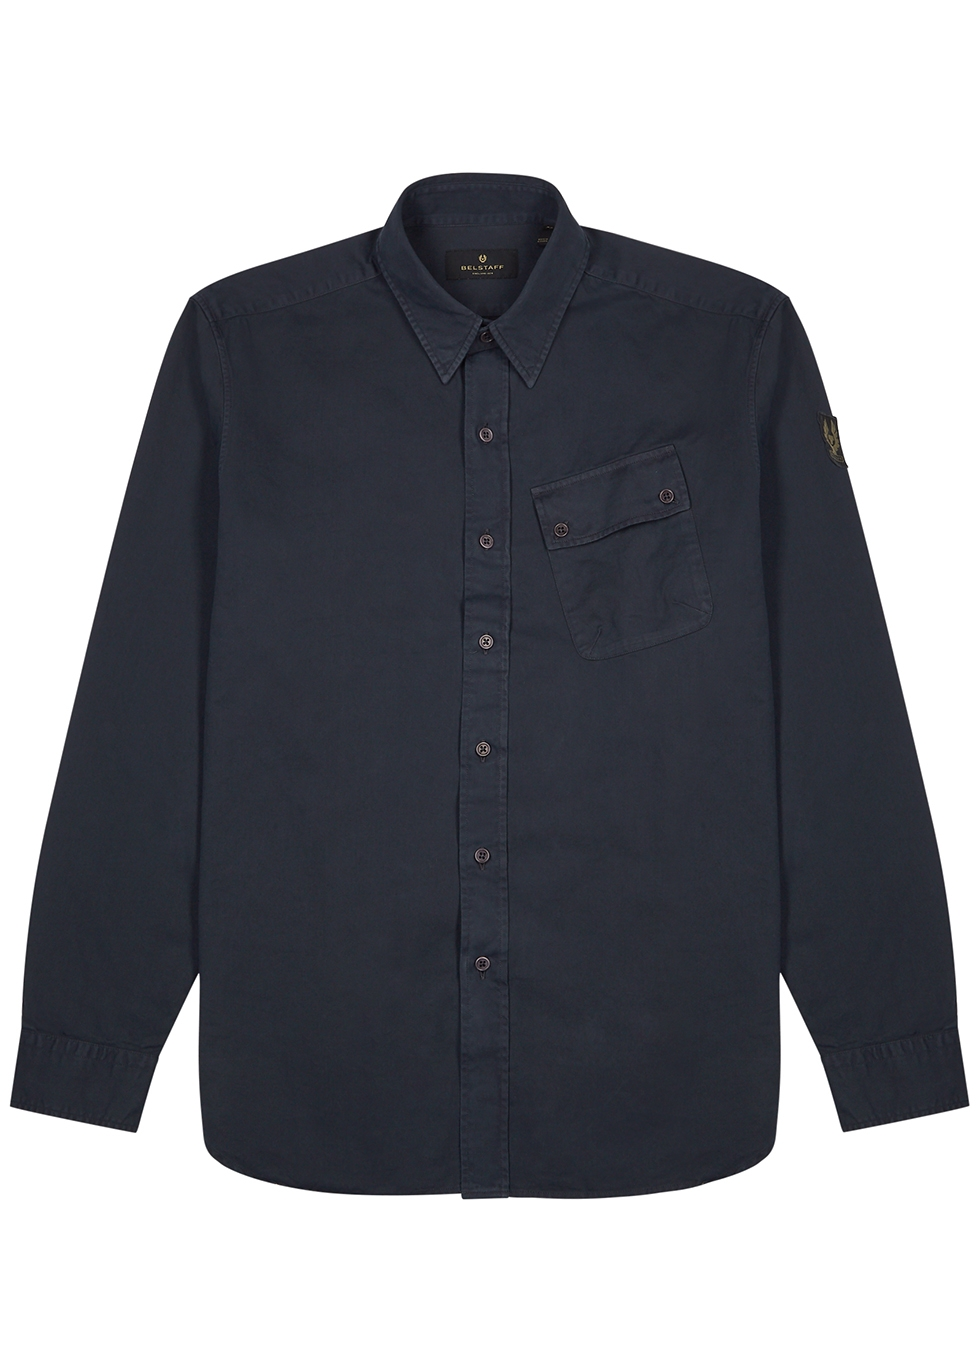 Pitch navy cotton shirt